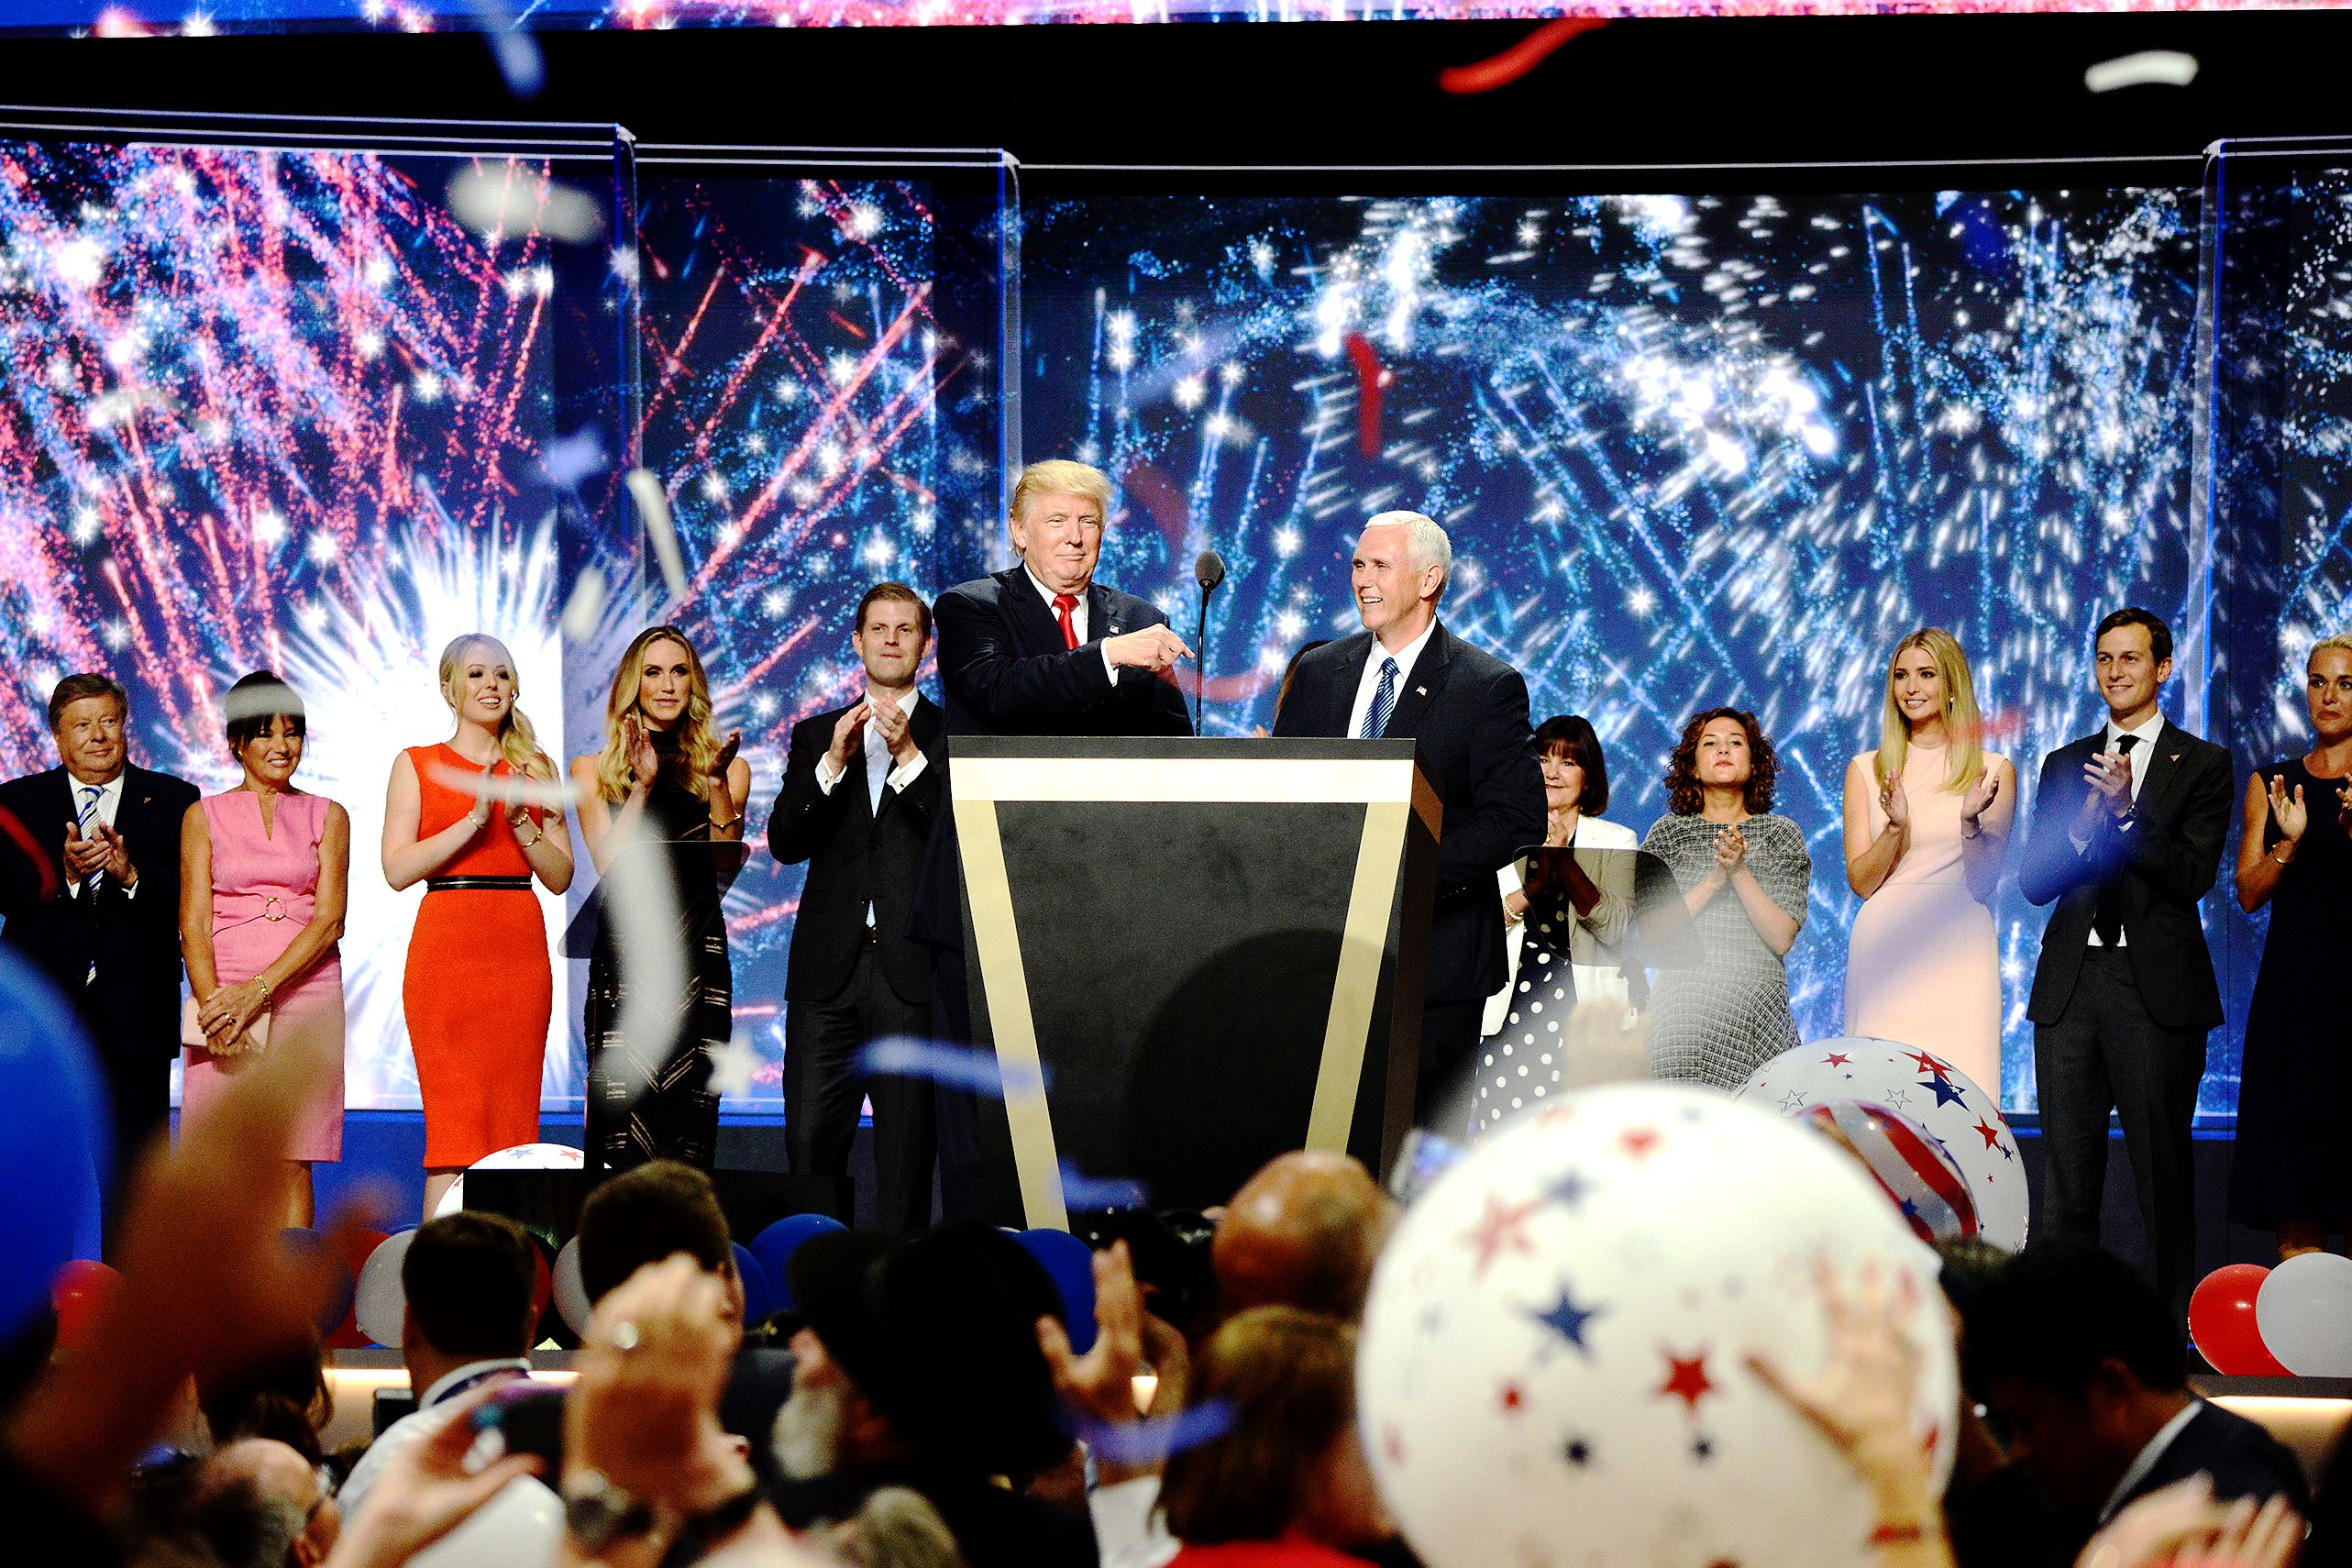 trump01 Donald Trump is joined on stage after his acceptance speech by runningmate Indiana Gov. Mike Pence and their families as the GOP convention celebrates its conclusion in Cleveland's Quicken Loans Arena.